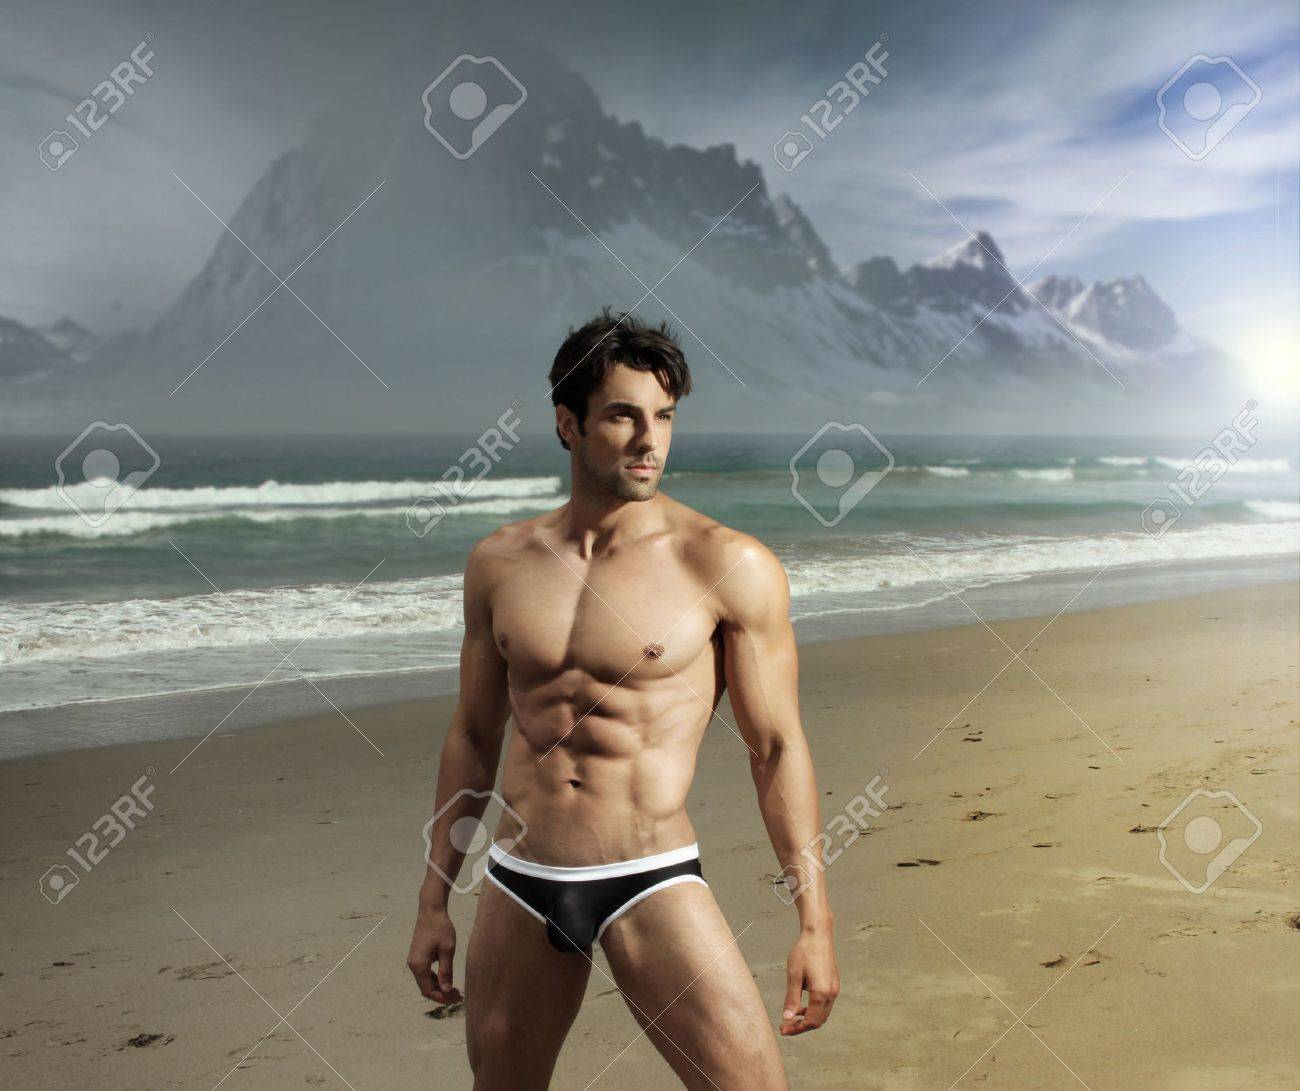 Muscular fit sexy guy on remote scenic beach location with dramatic mountains in background Stock Photo - 14732863